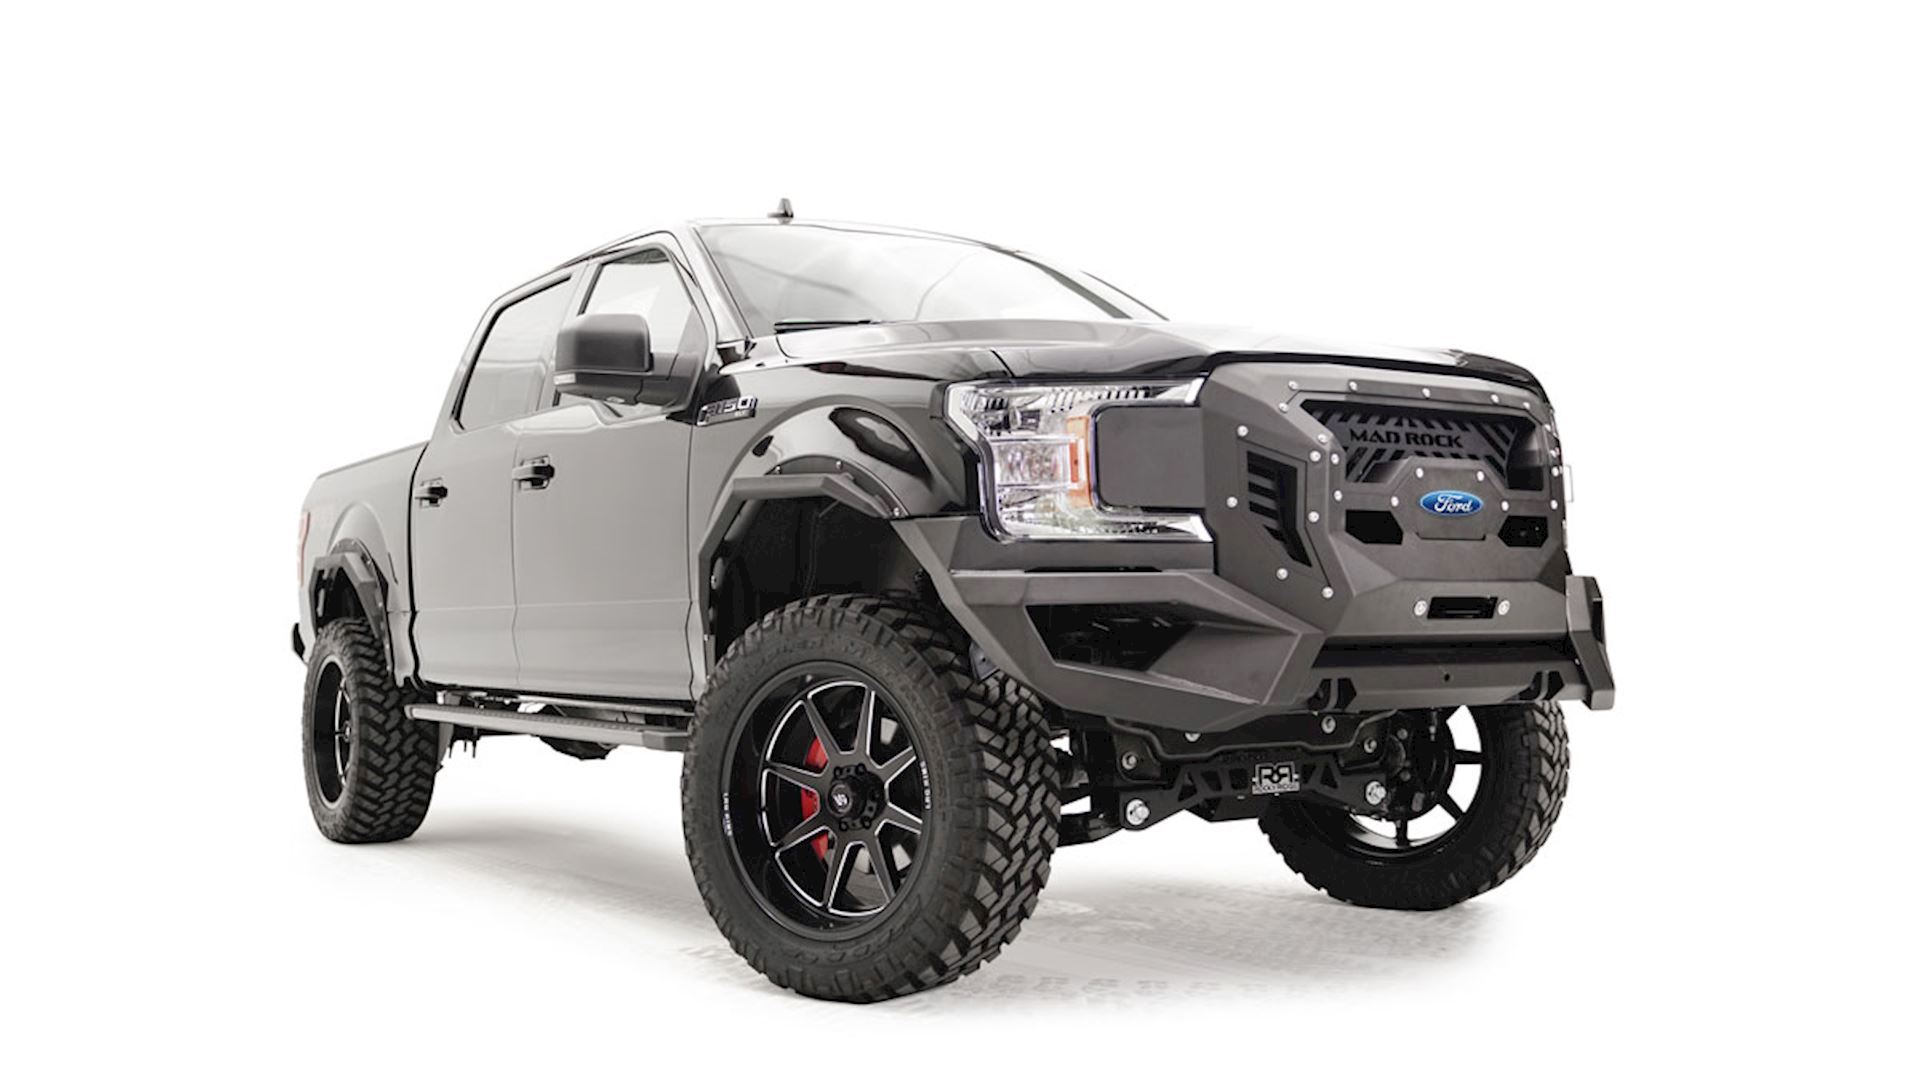 Have You Heard About The Ford F-150 Mad Rock From Rocky Ridge?